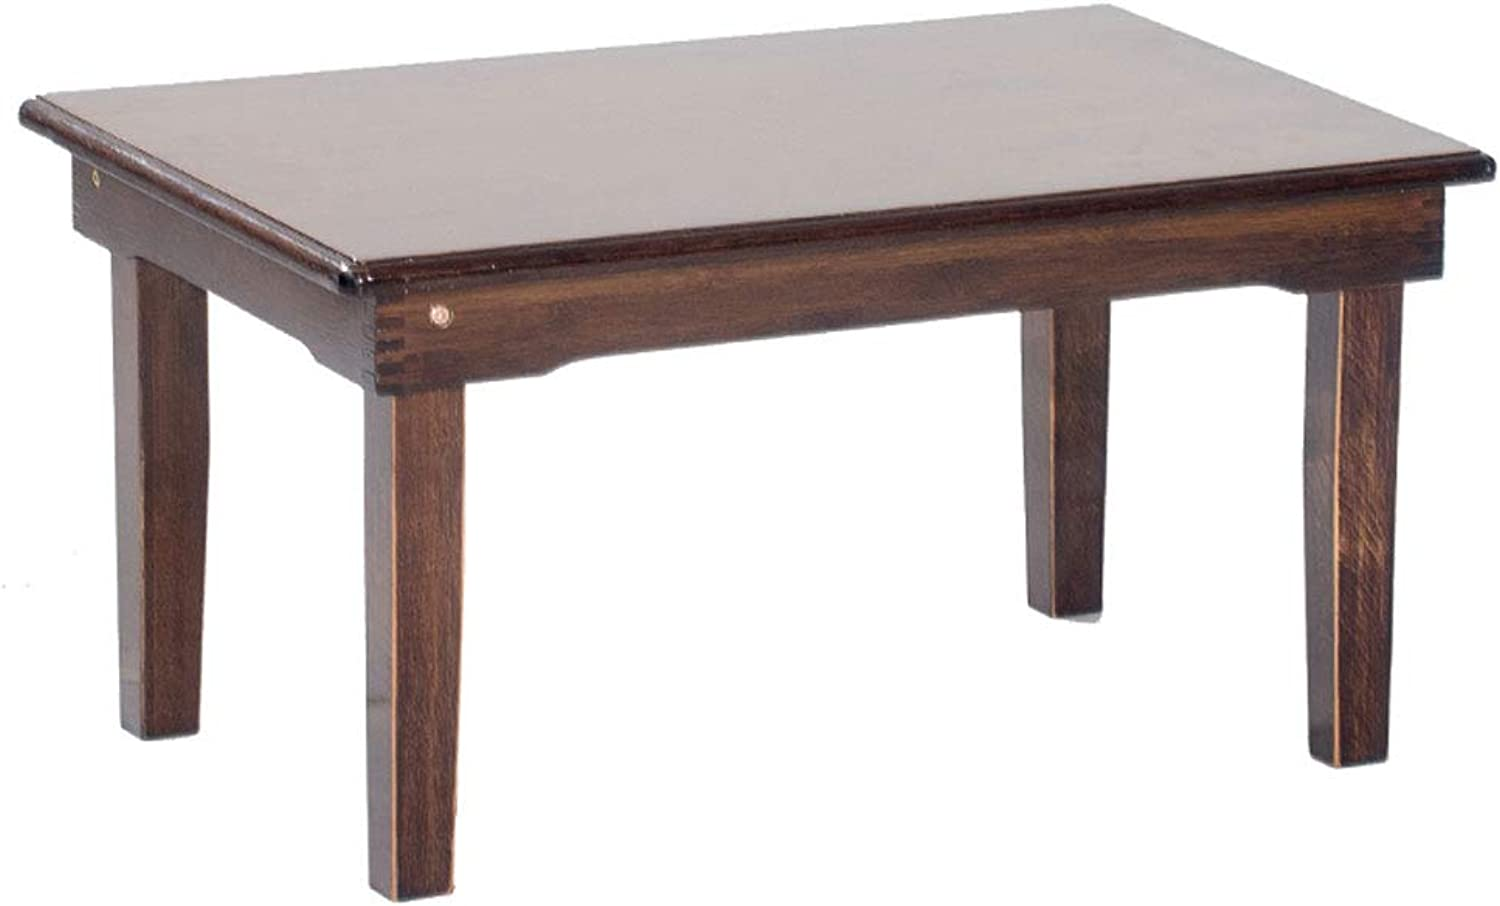 NJ Folding Table- Home Retro Folding Table, Living Room Bedroom Small Table Student Study Table (color   Brown, Size   60x40x25cm)